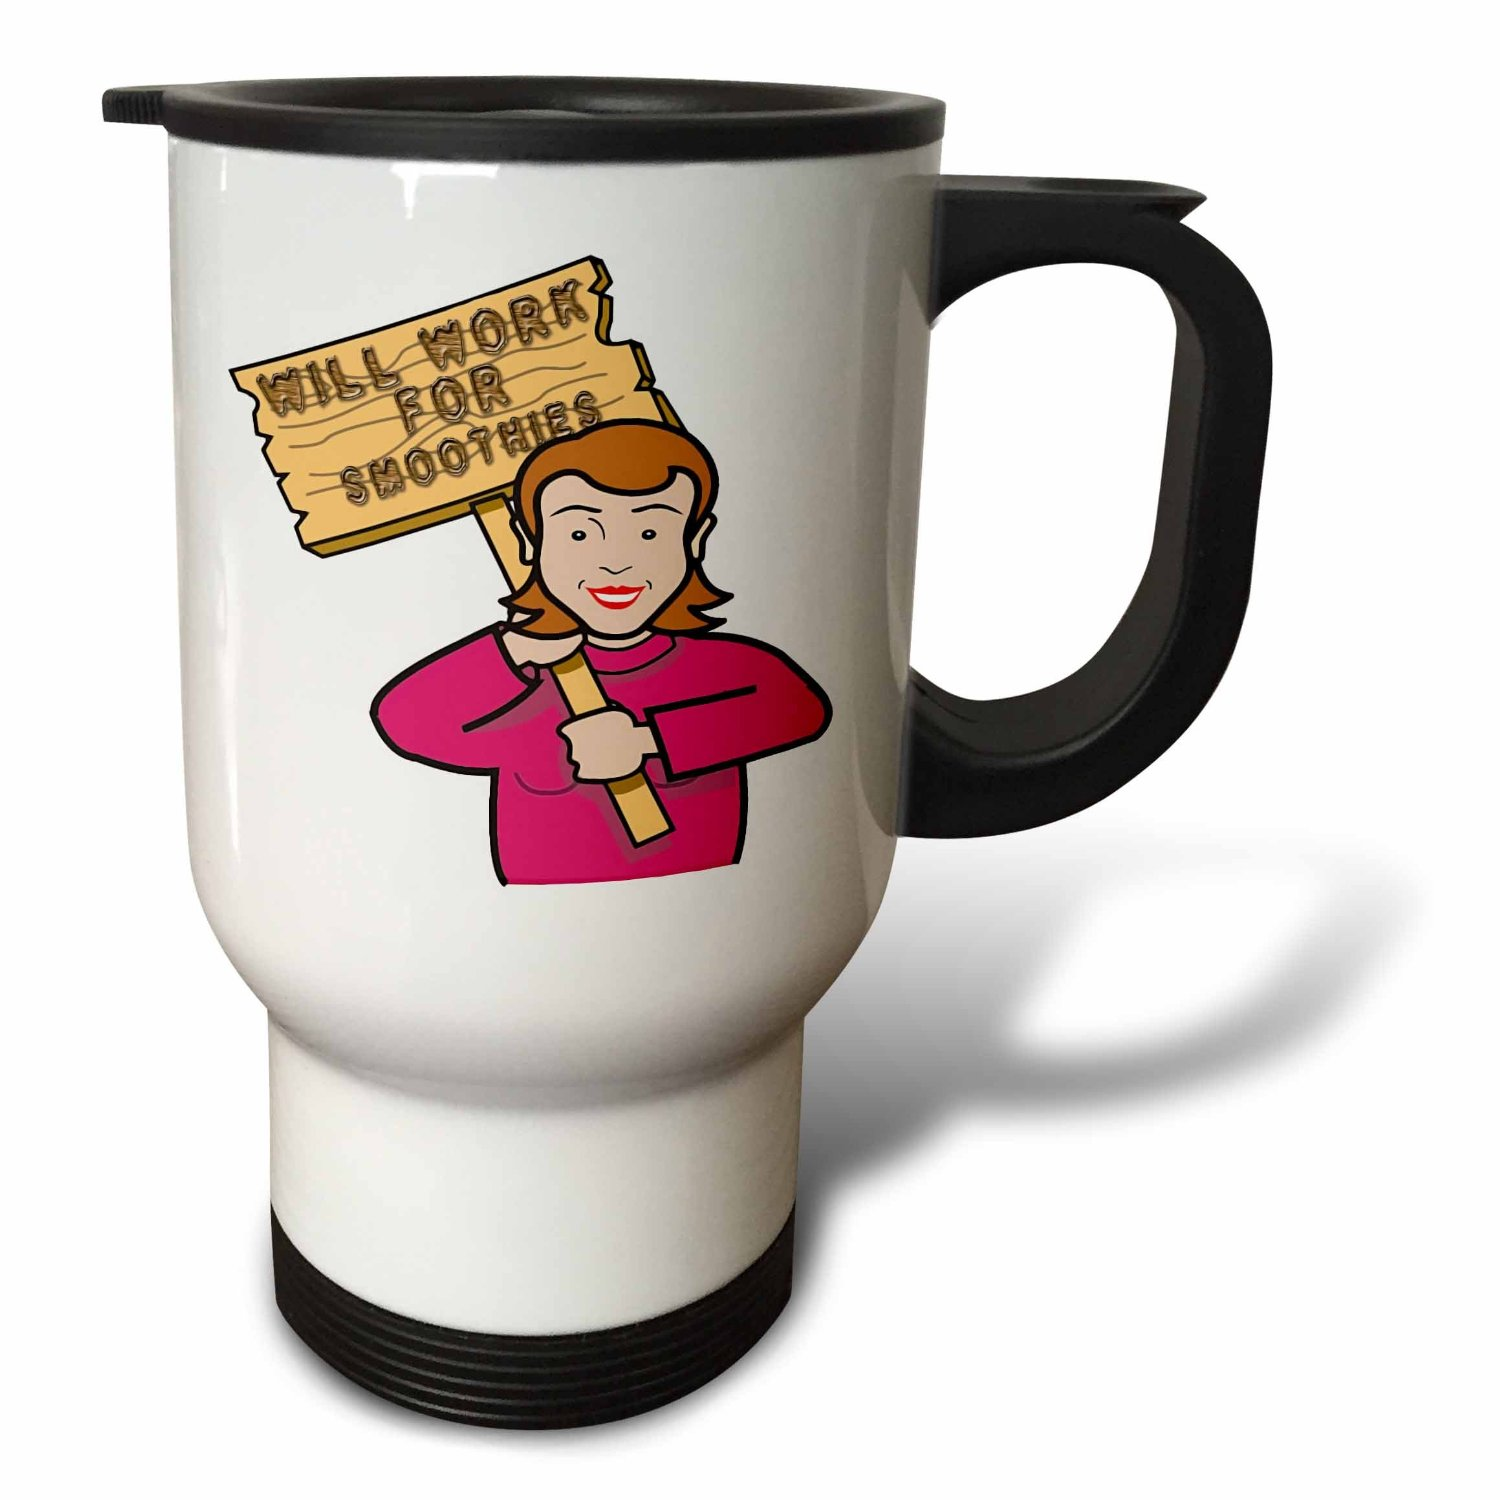 Dooni Designs Humorous Bribery Signs Sarcasm Designs - Funny Humorous Woman Girl With A Sign Will Work For Smoothies - 14oz Stainless Steel Travel Mug (tm_117404_1)